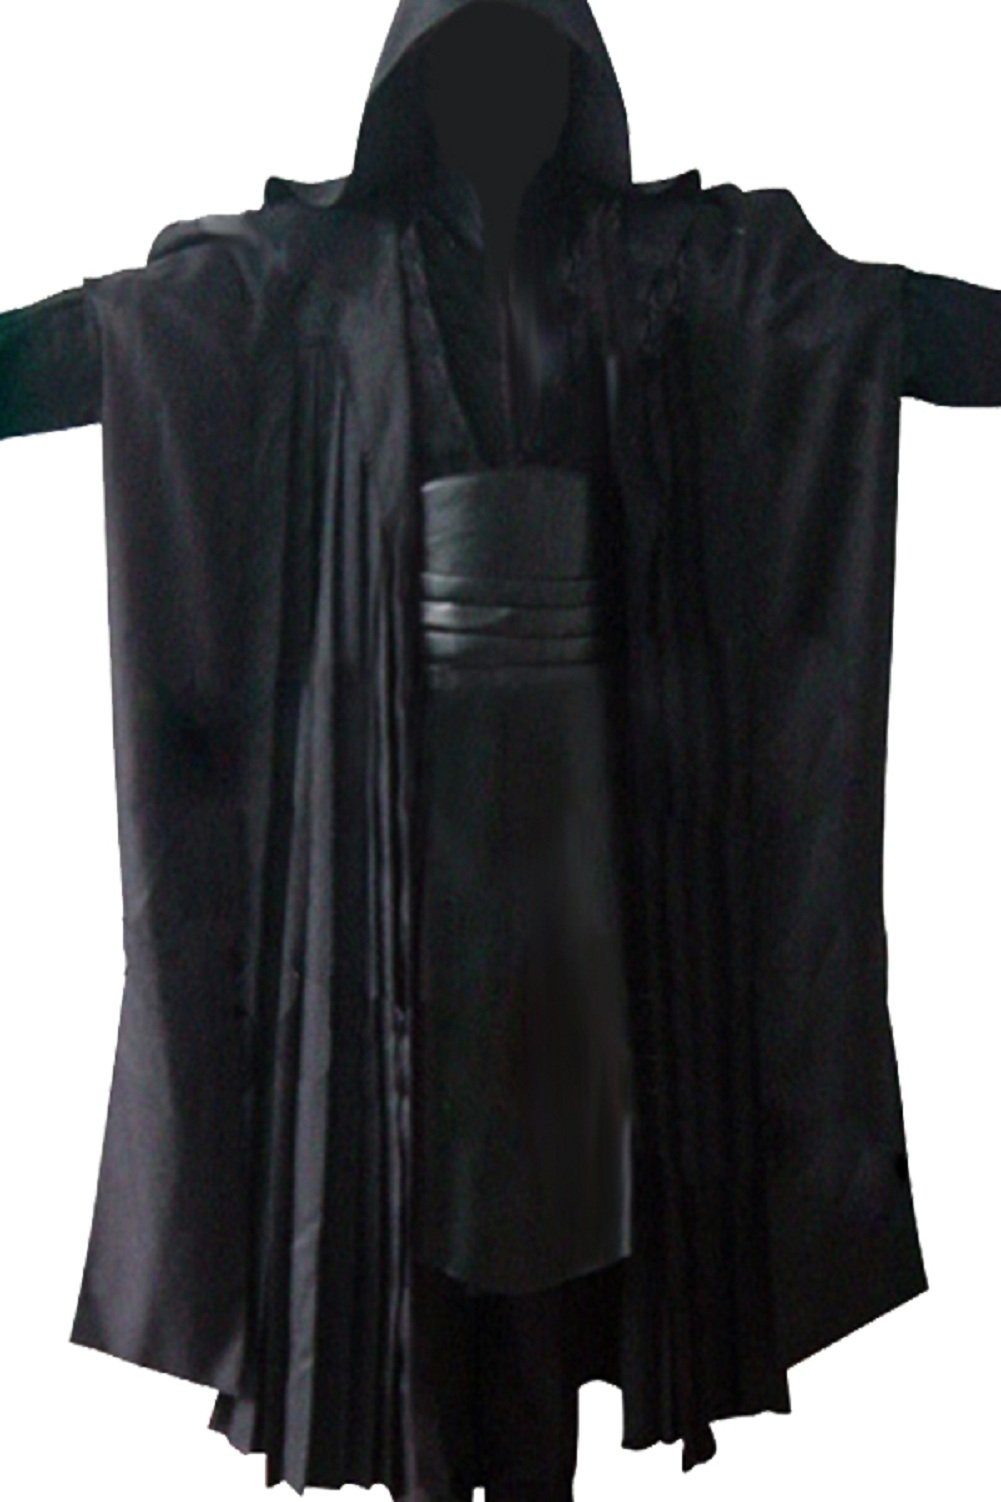 Allten Men's Cosplay Costume Black Linen Cotton Halloween Uniform Tunic Robe XXL by Allten (Image #1)